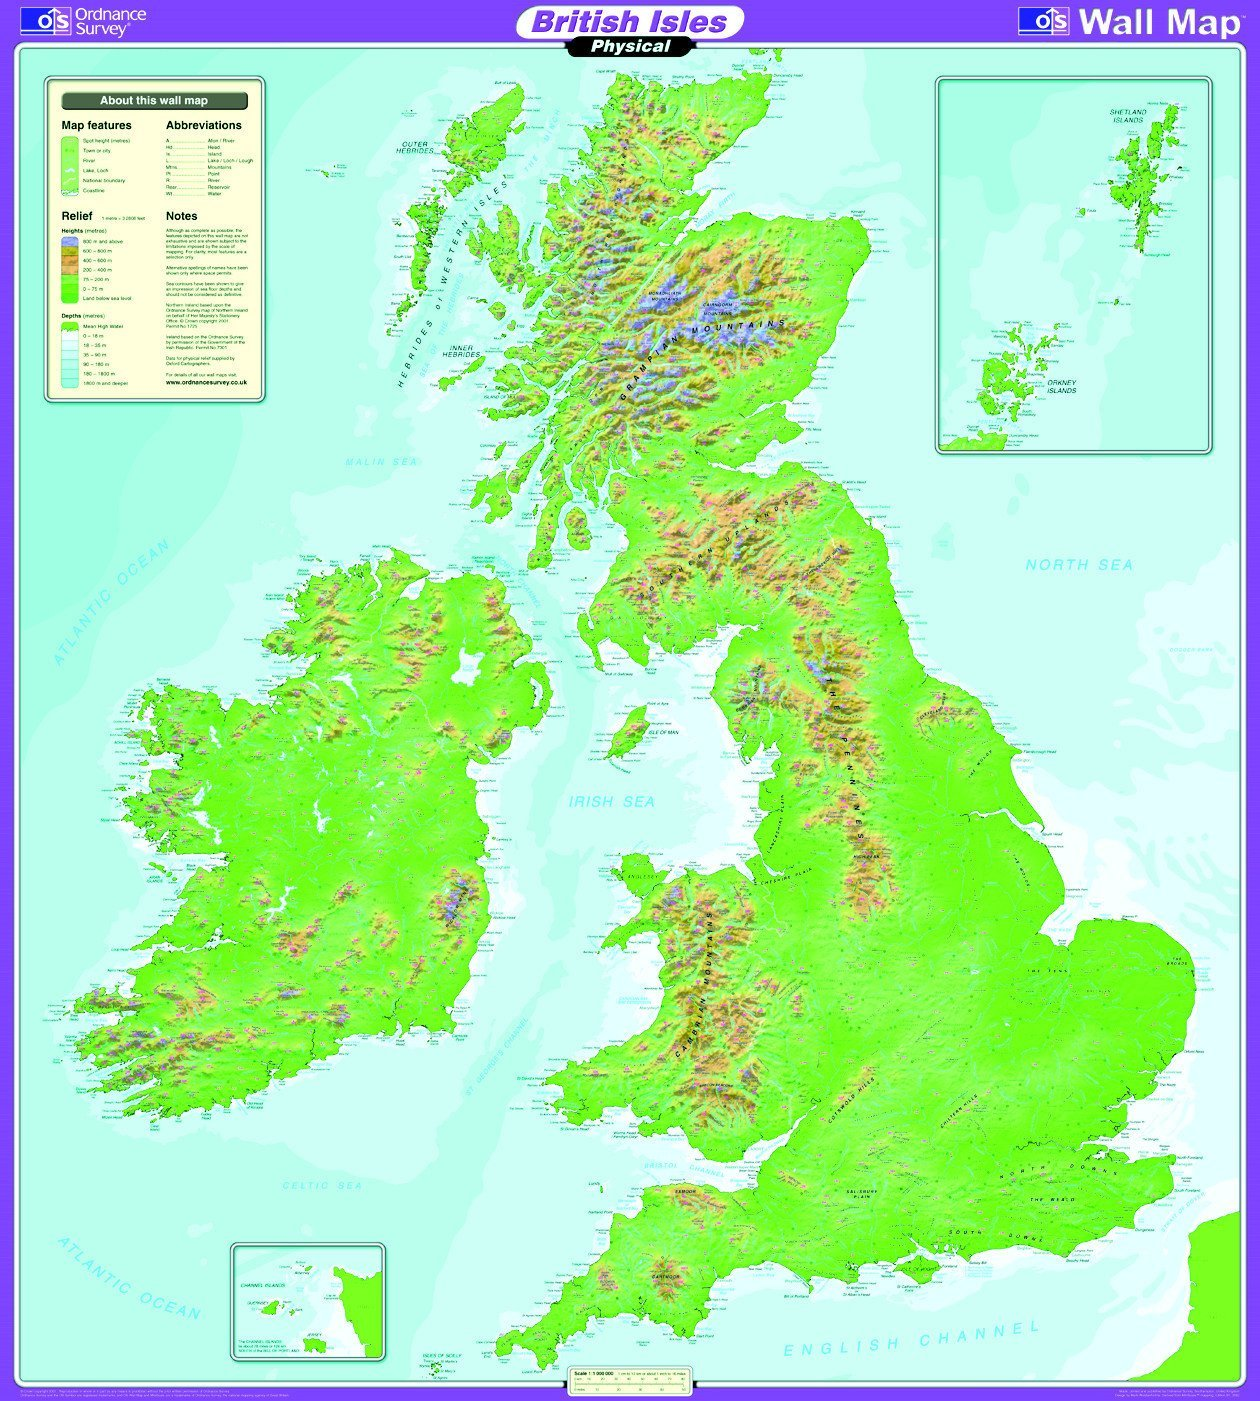 Os Map Of Ireland.Ordnance Survey United Kingdom Wall Map Series